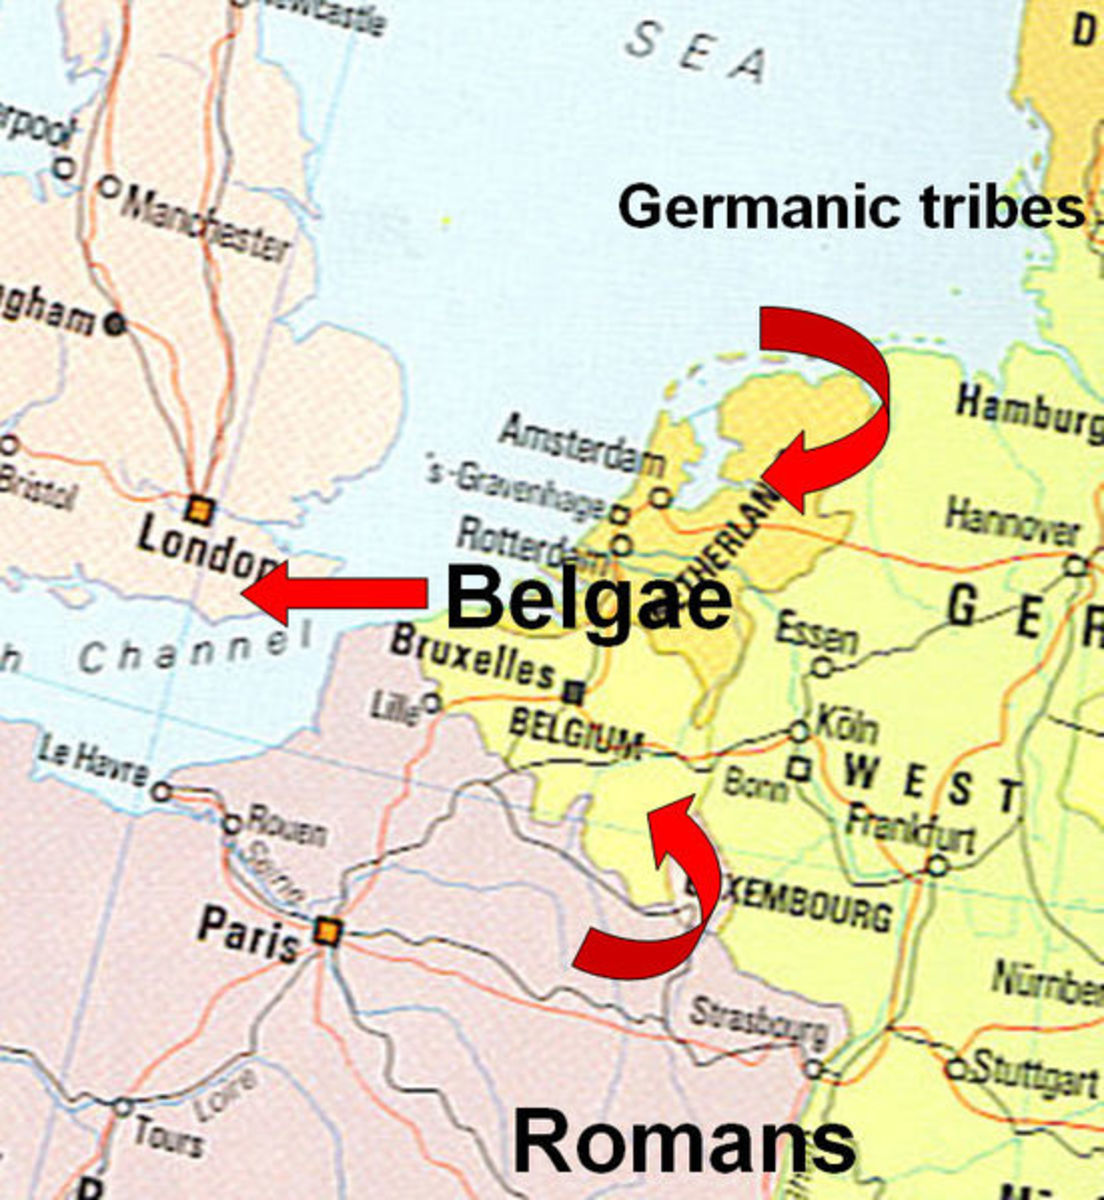 Anti-Roman factions of the Belgae flee to Britain.